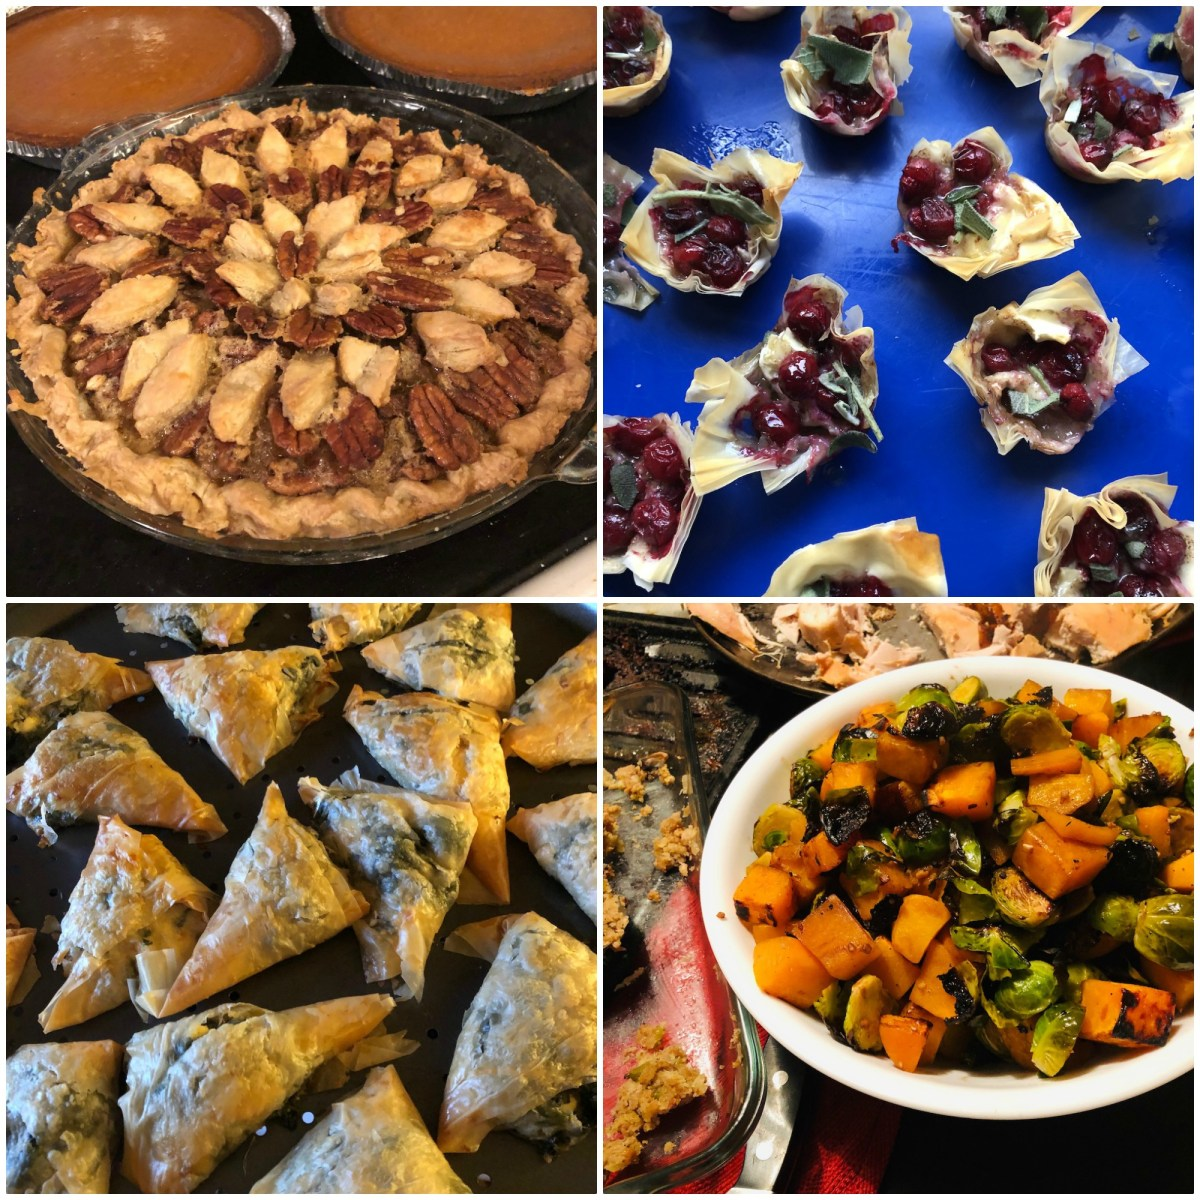 What's for supper? Vol. 194: Cranberry brie tarts! Spanakopita pockets! Sausage oyster stuffing! The Thanksgiving 2019 feast.